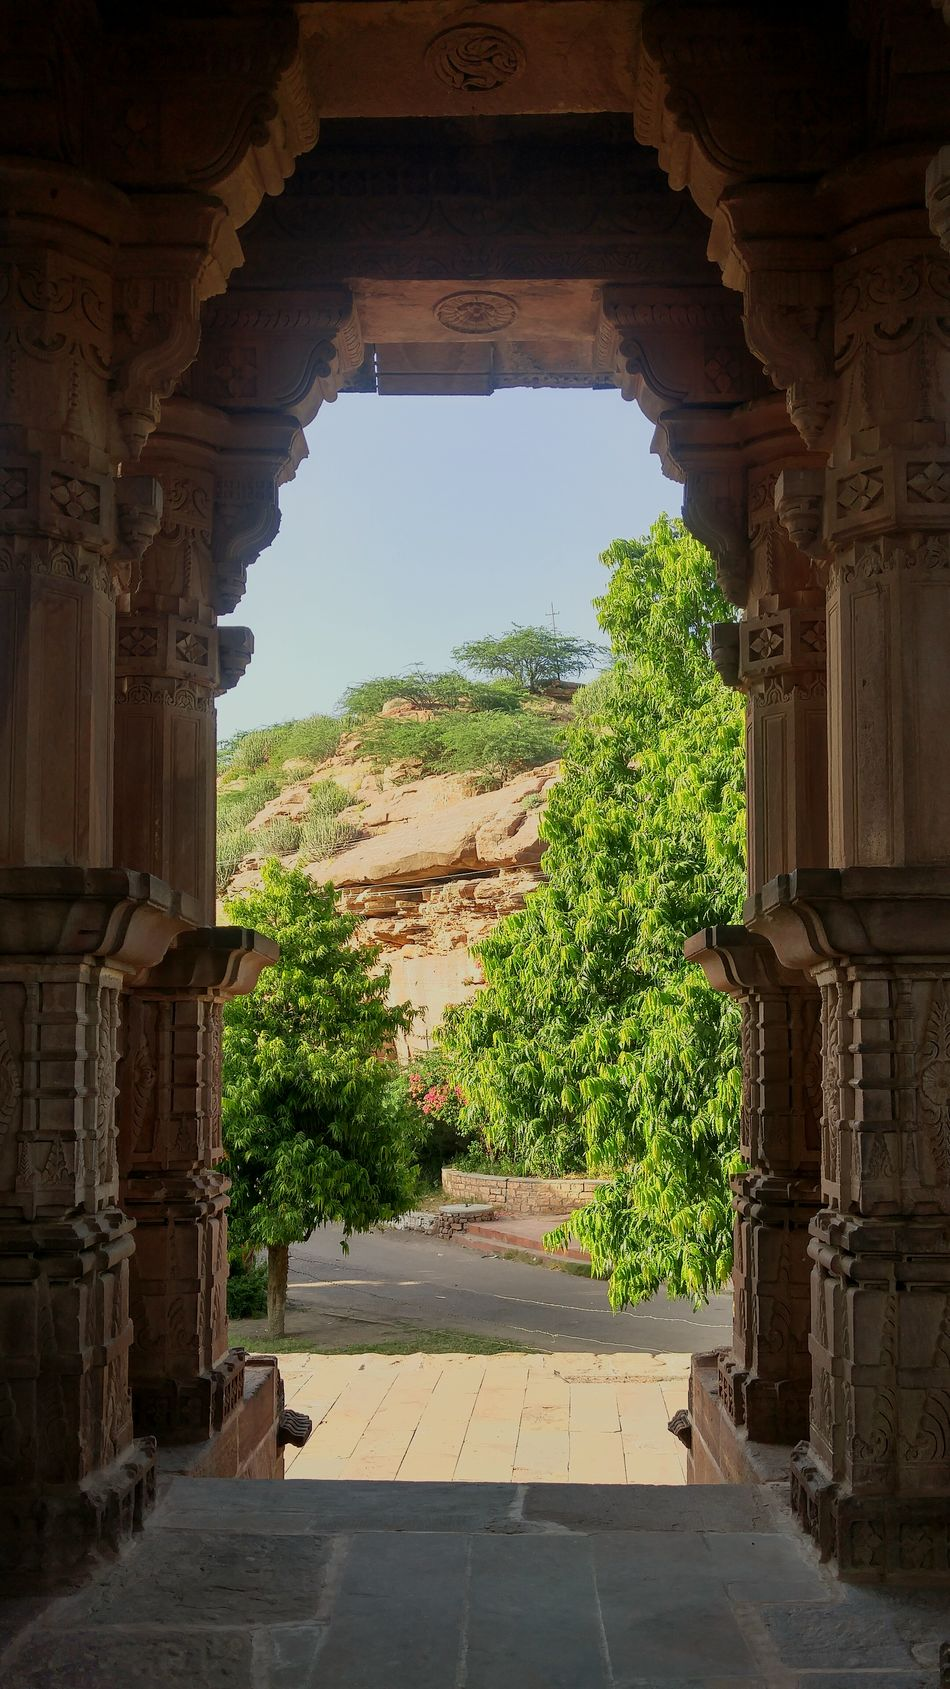 Rajasthandiaries IncredibleindiaRural Scene Place Of Worship Old Buildings Architecture Carvings Historical Greenery Day Sunlight ☀ Hot Weather Gate Hill Shelter Travel Destinations Rajasthan_diaries Miles Away